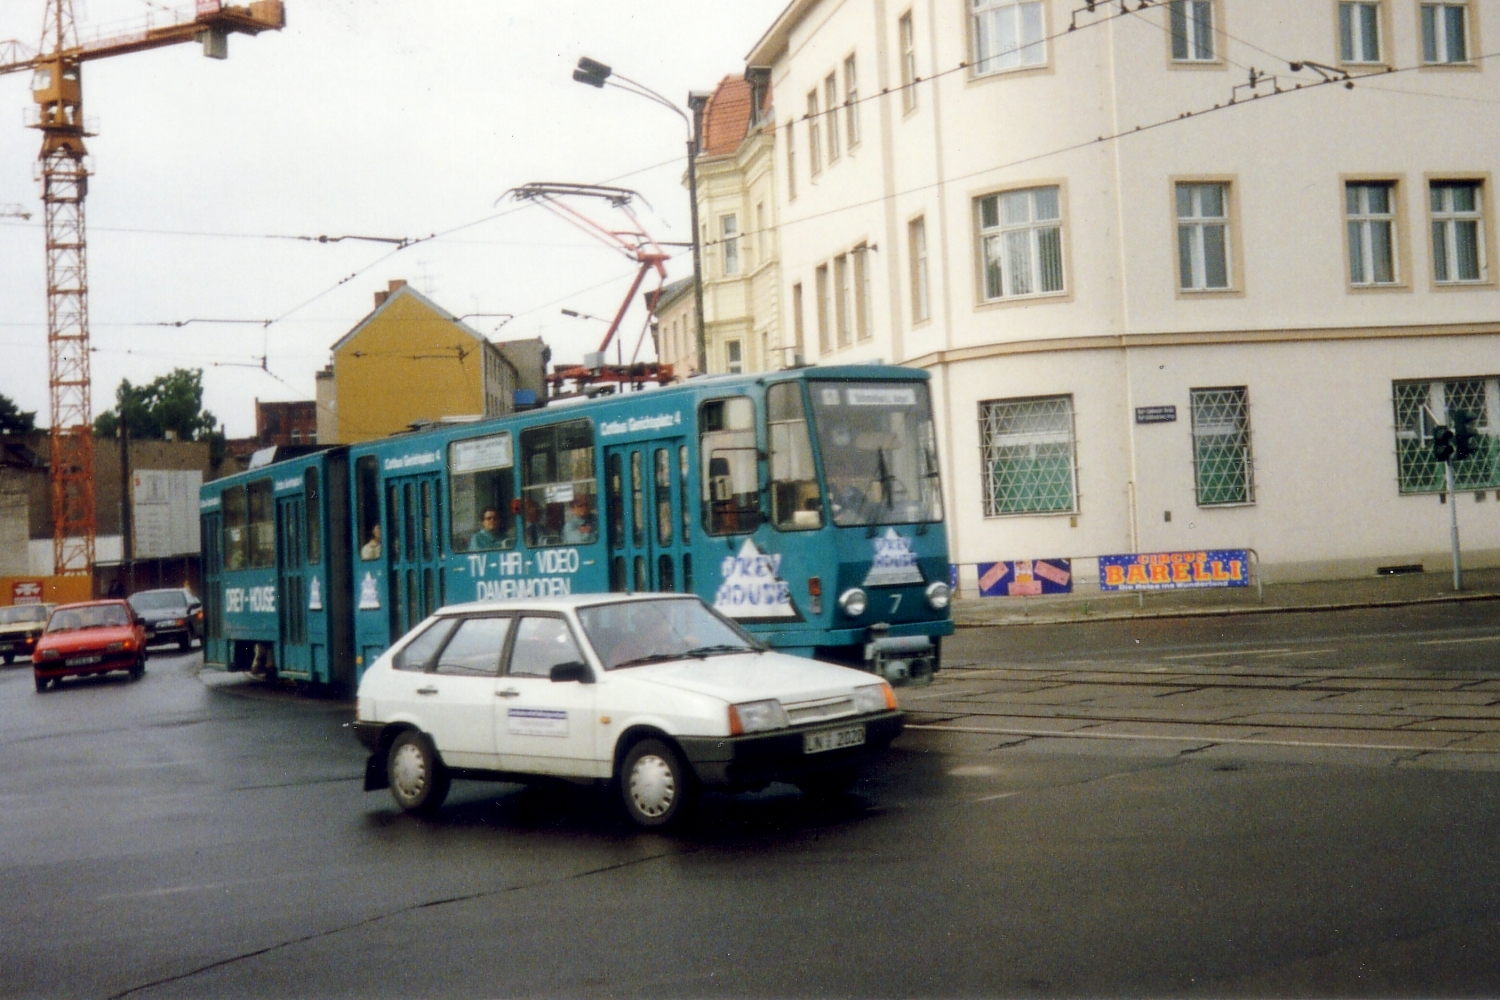 Cottbus articulated tram 7 on tram line 1 in the square Breitscheidplatz (1993).